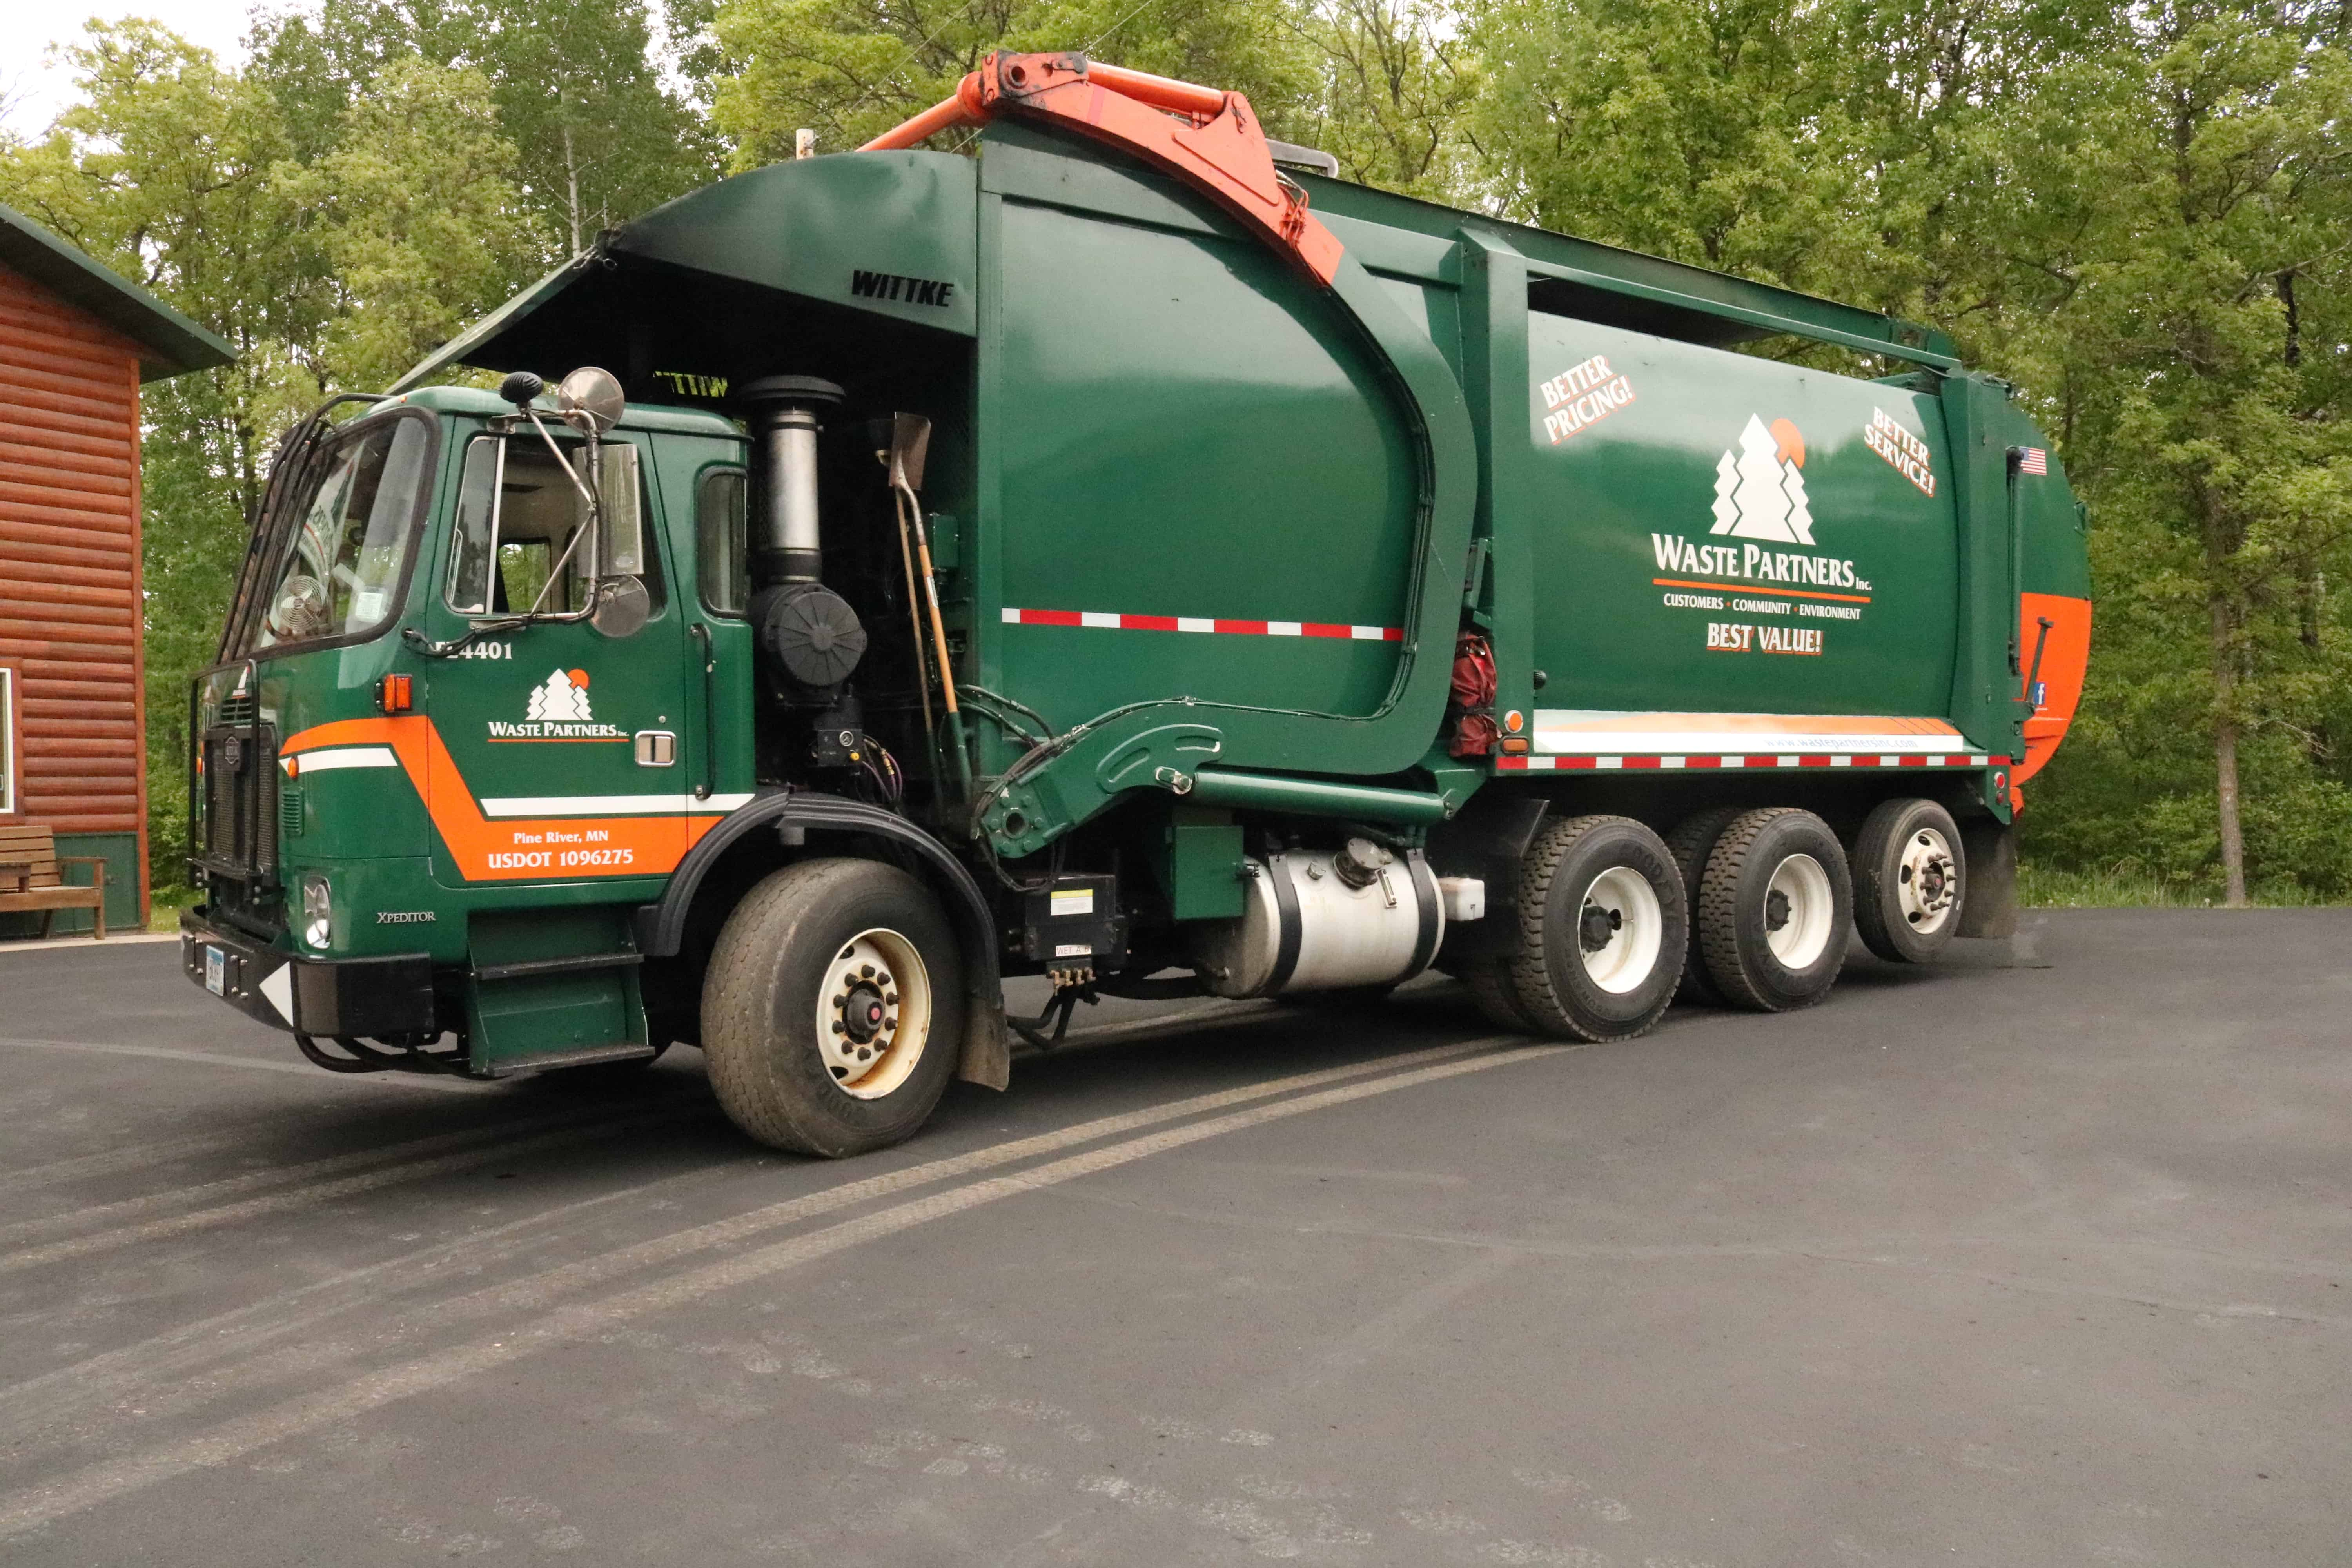 Commercial Recycling Truck Waste Partners